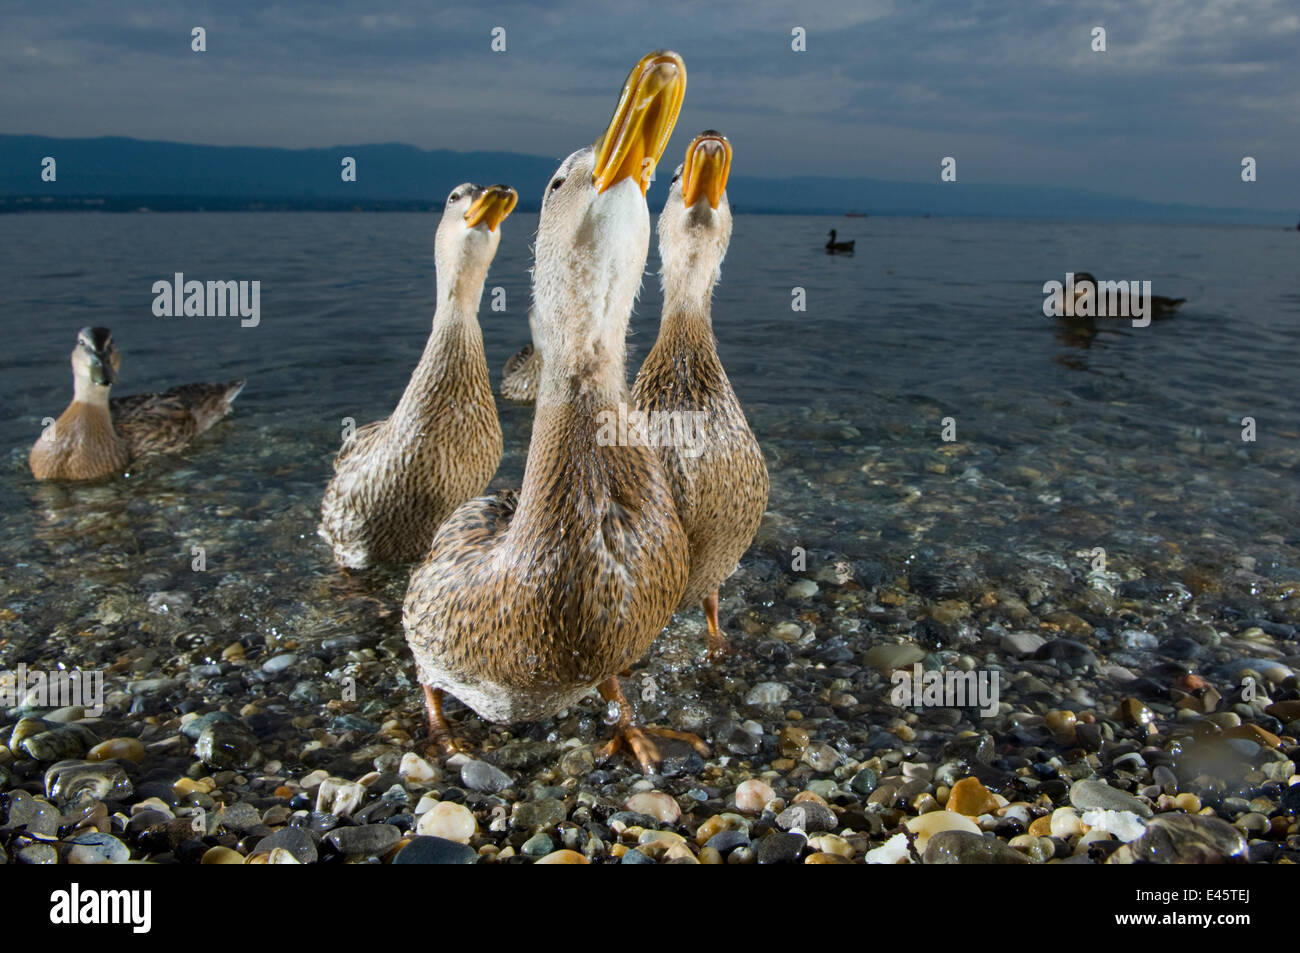 Mallard ducks (Anas platyrhynchos) females looking skyward together on the shore of Lake of Geneva, France, June. - Stock Image